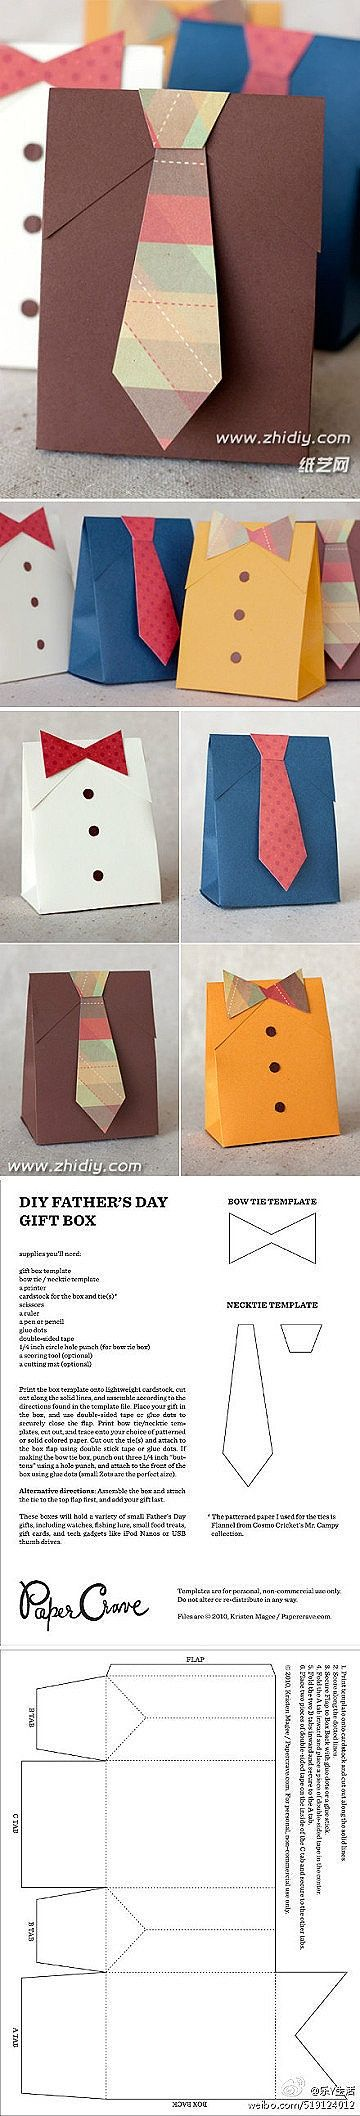 Cute Father's Day Gift Bag